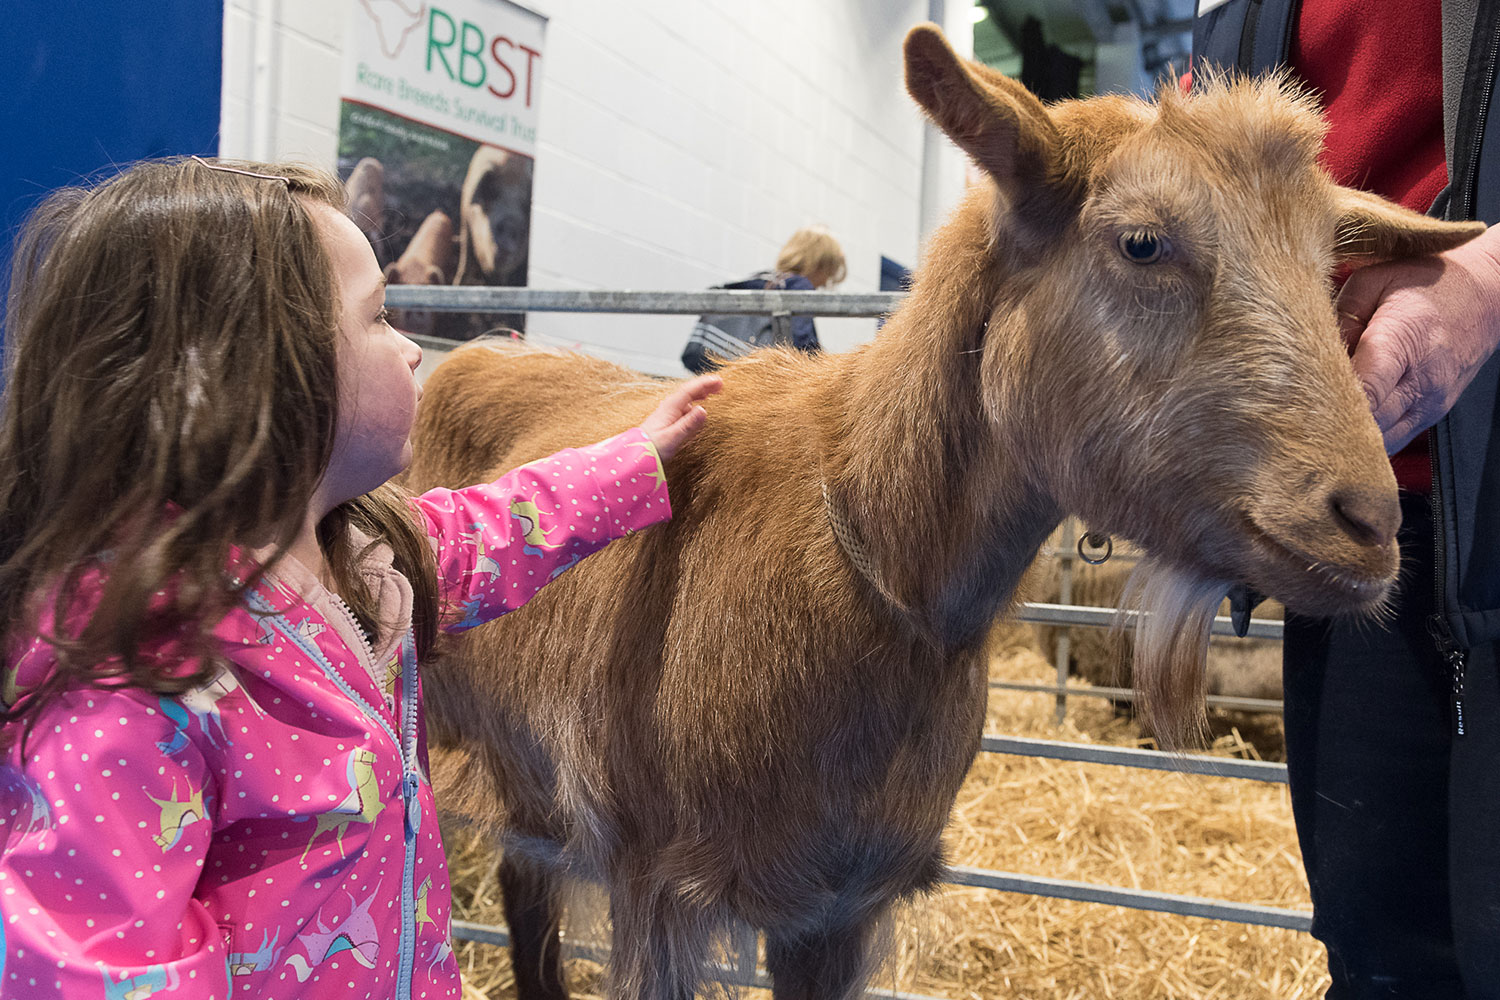 Rare breed goat at Springtime Live